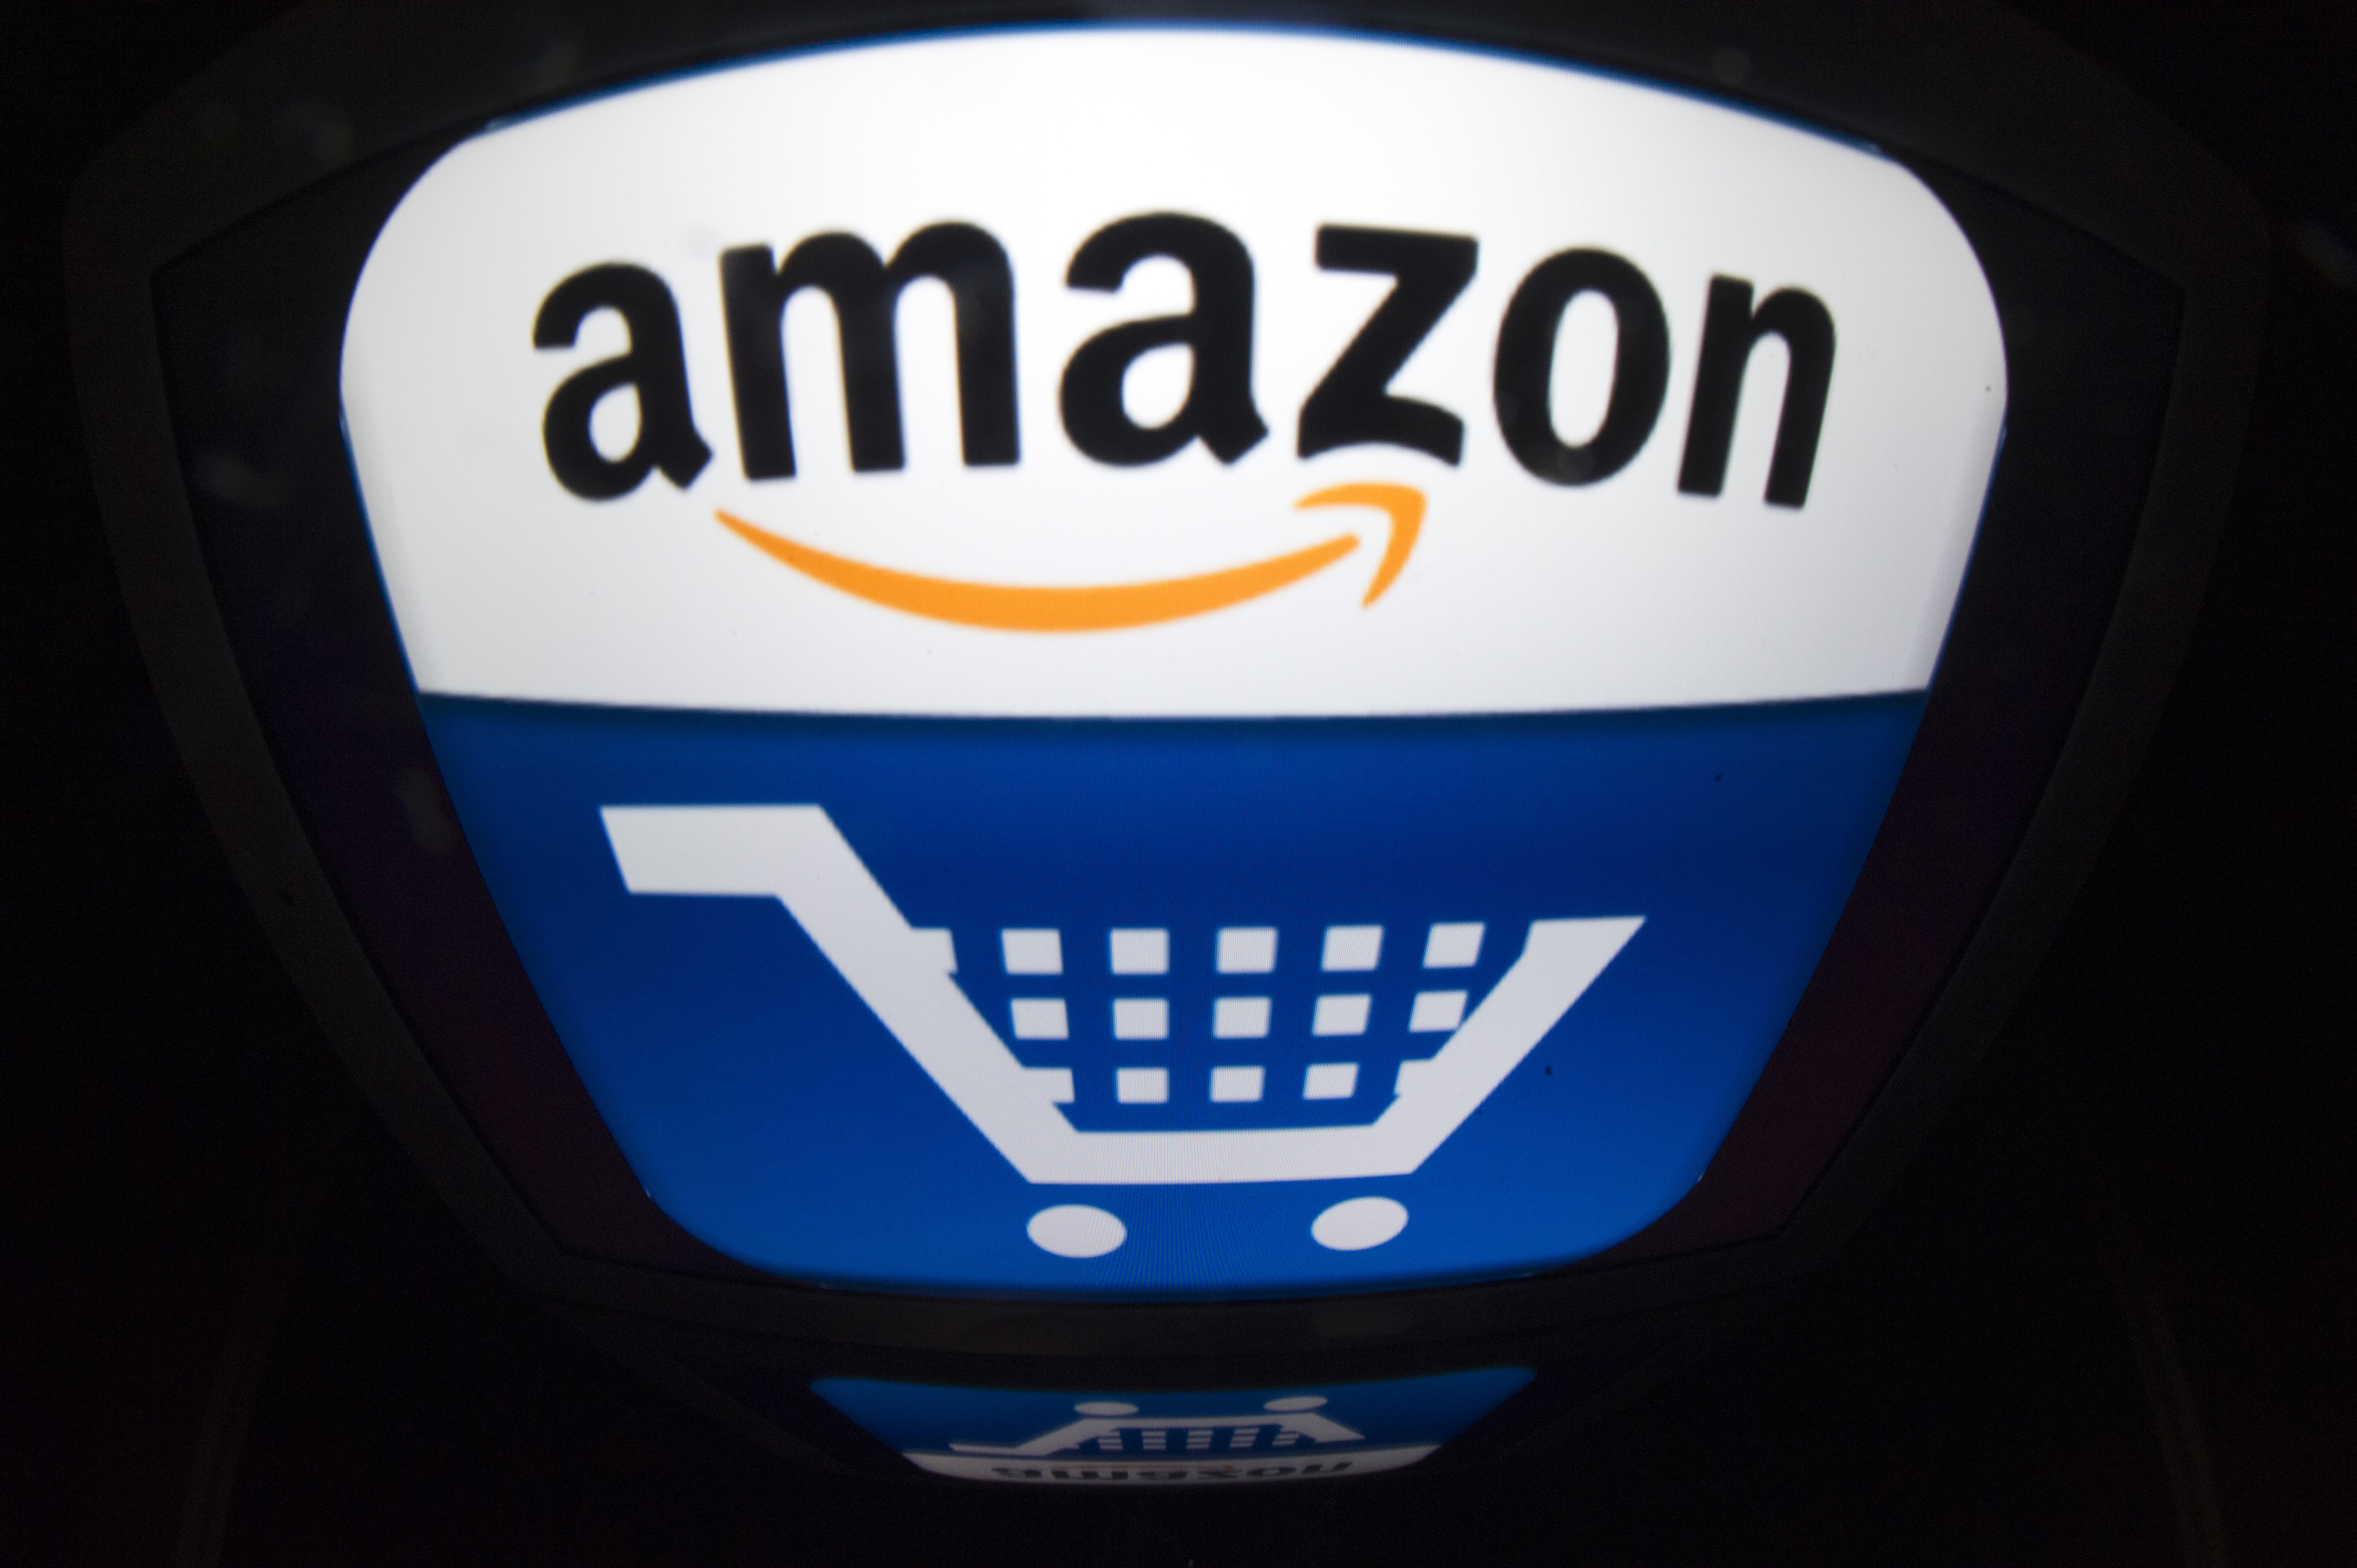 The Amazon logo is shown in Paris on November 13, 2012.